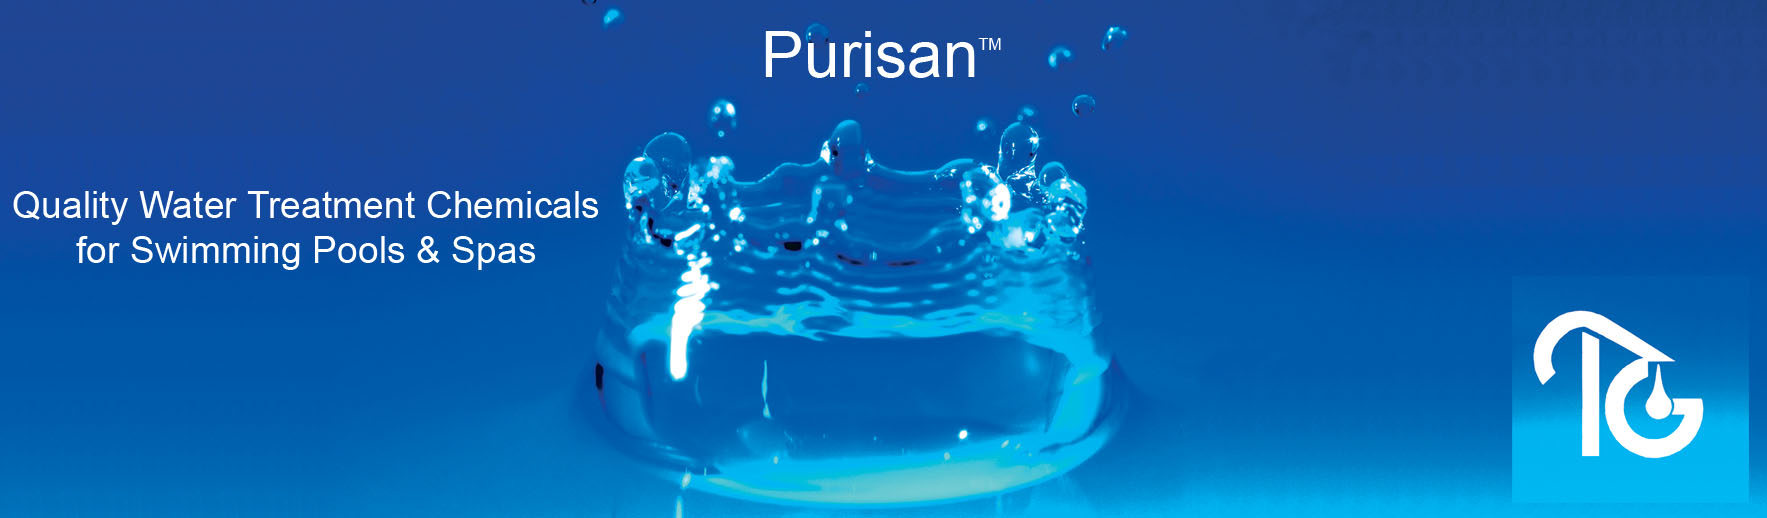 Purisan Remedies - Click to Shop Purisan